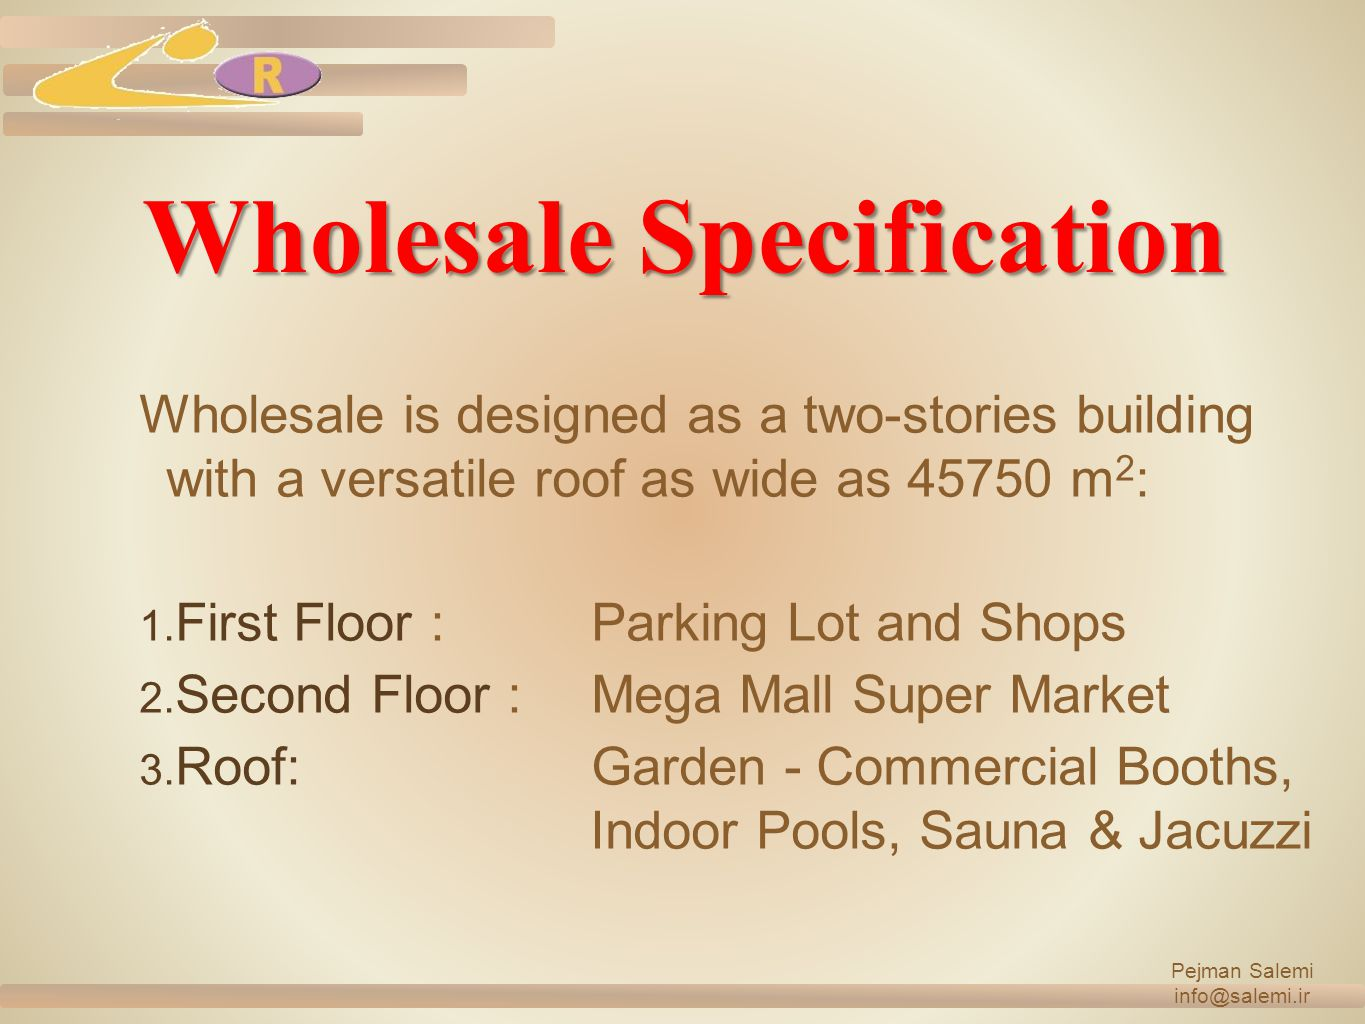 Wholesale Specification